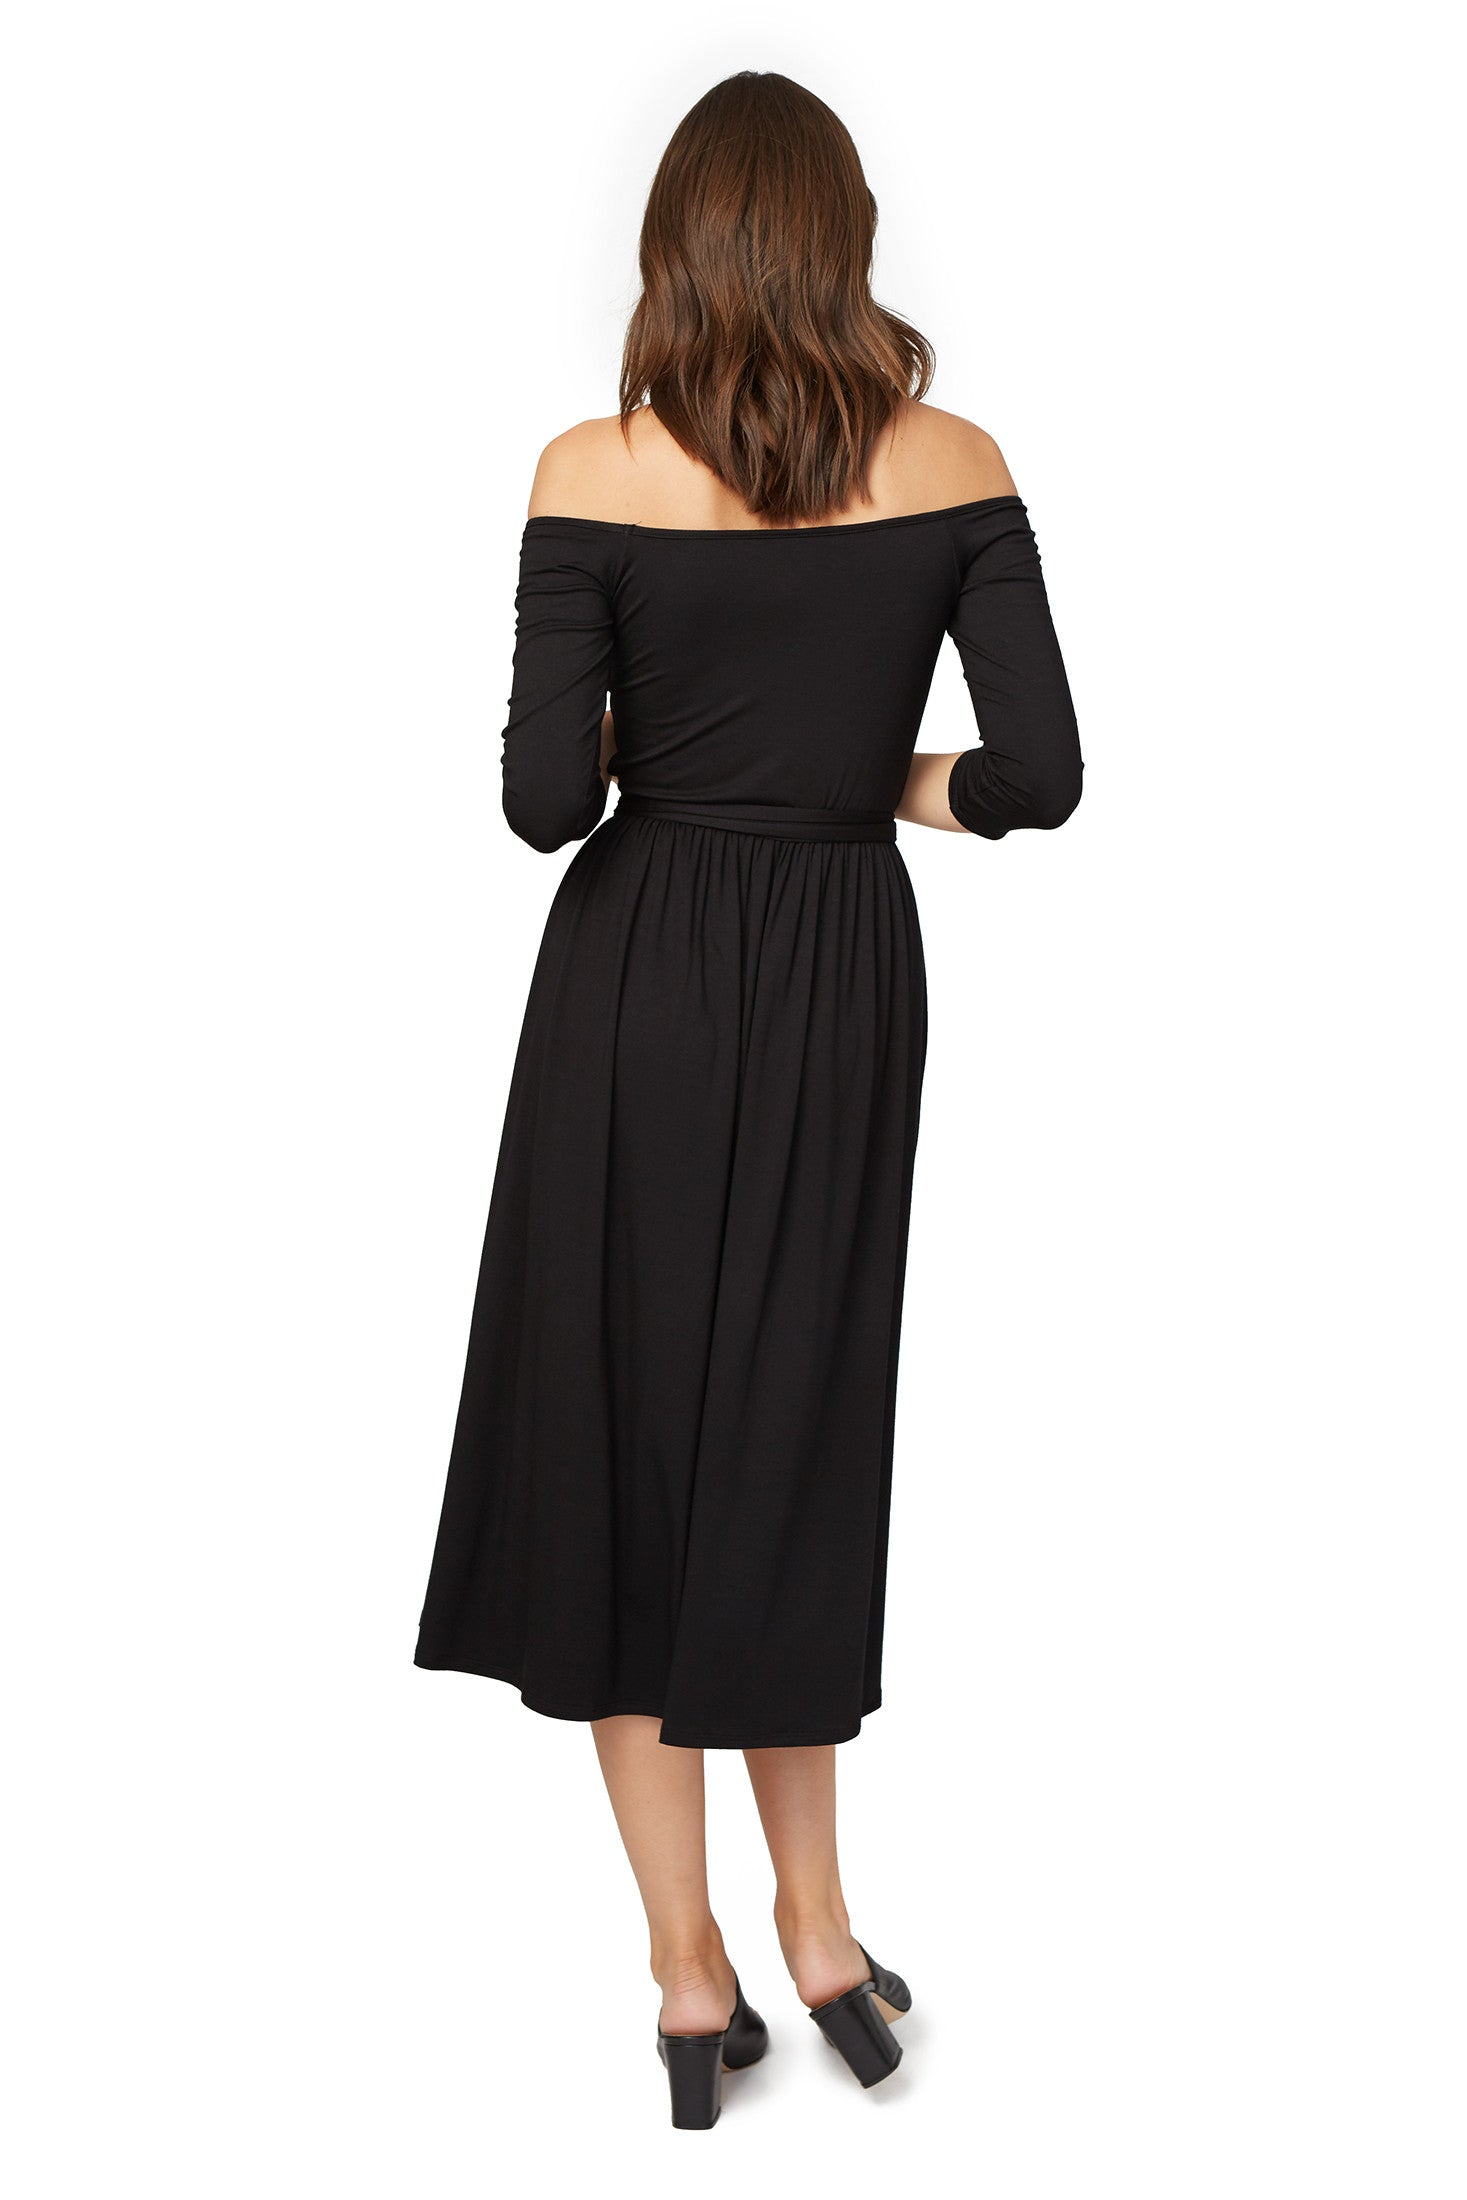 CASSEY DRESS- BLACK